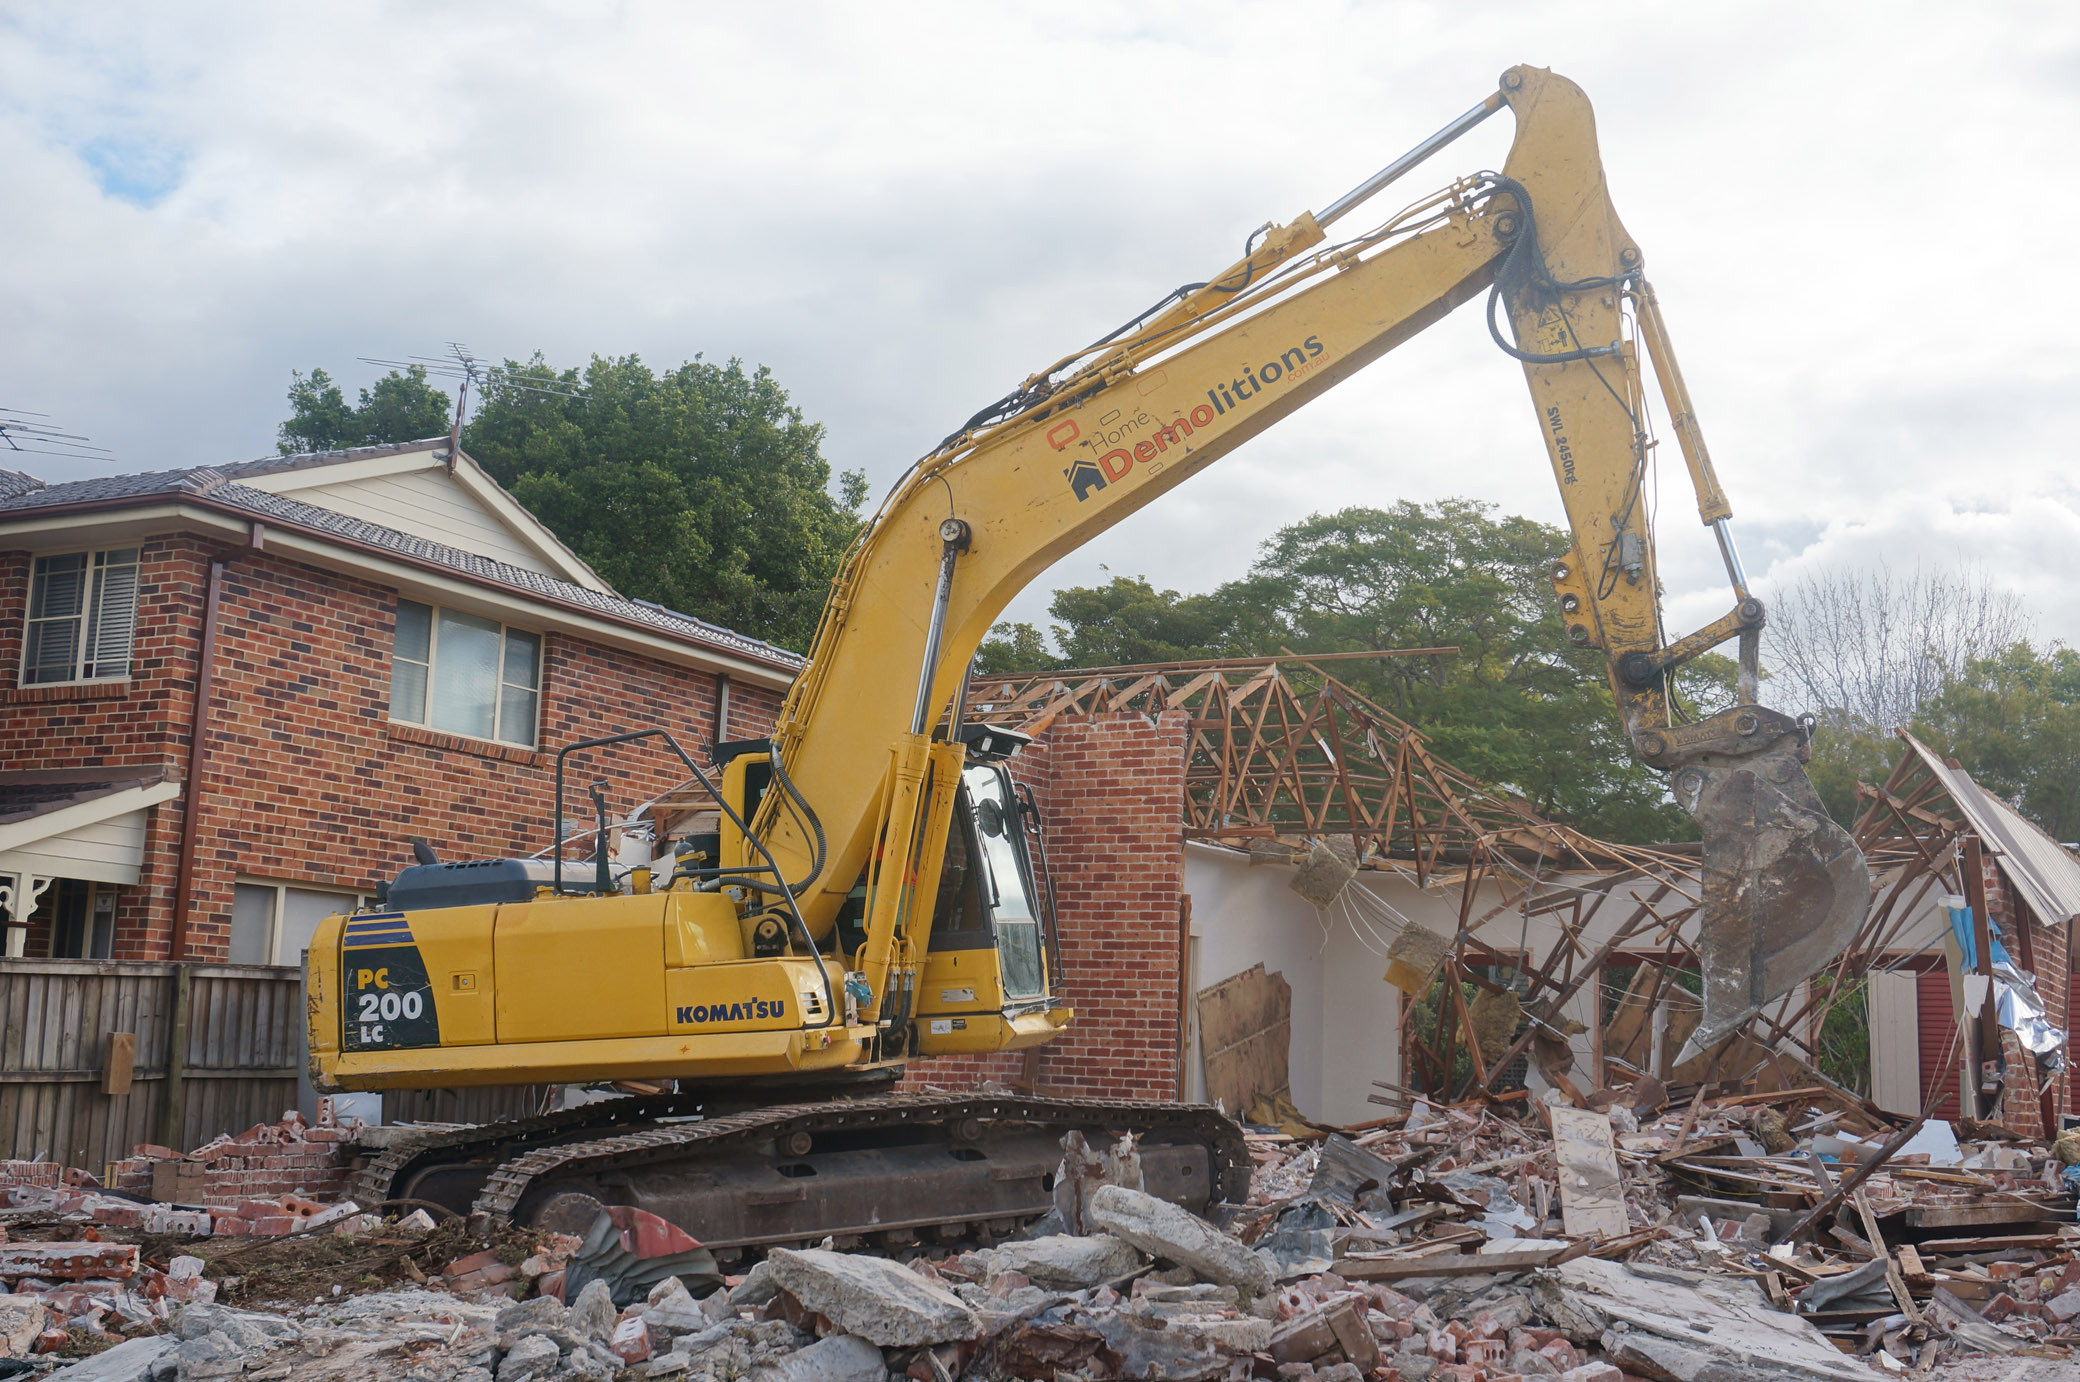 Excavator in front of partially demolished brcik house in West Ryde.jpg